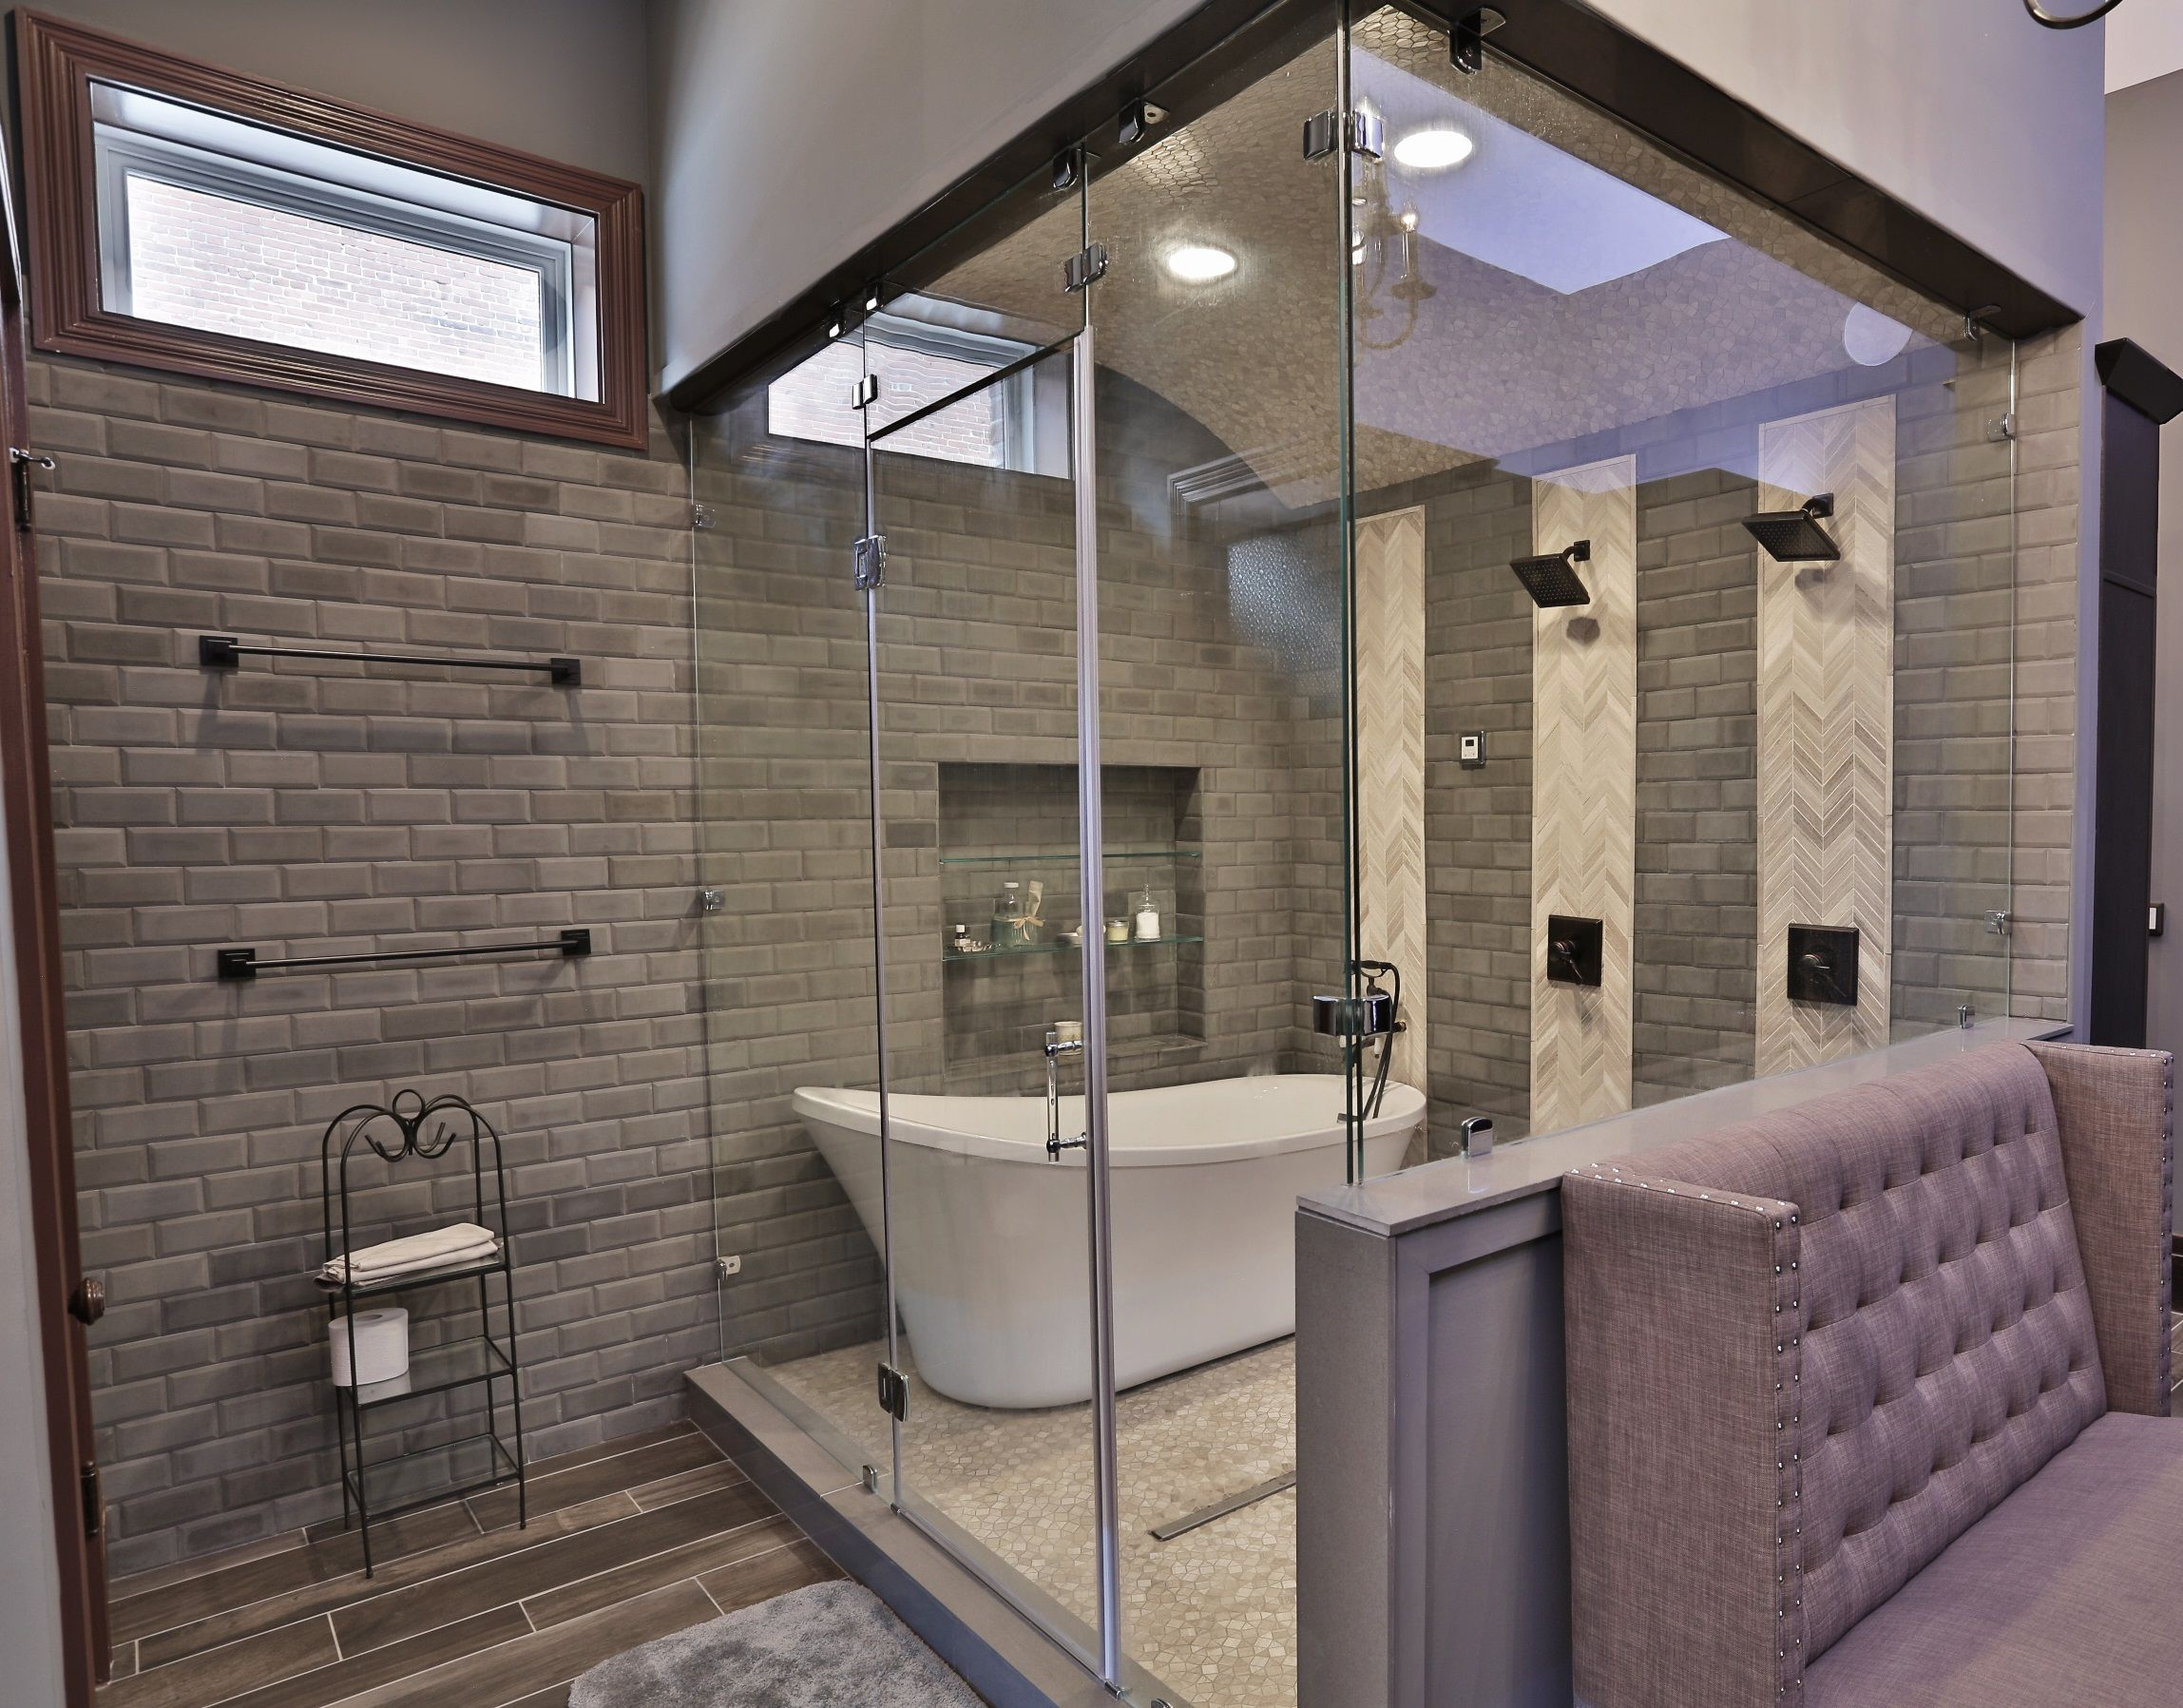 TileTuesday highlights a STUNNING installation out of